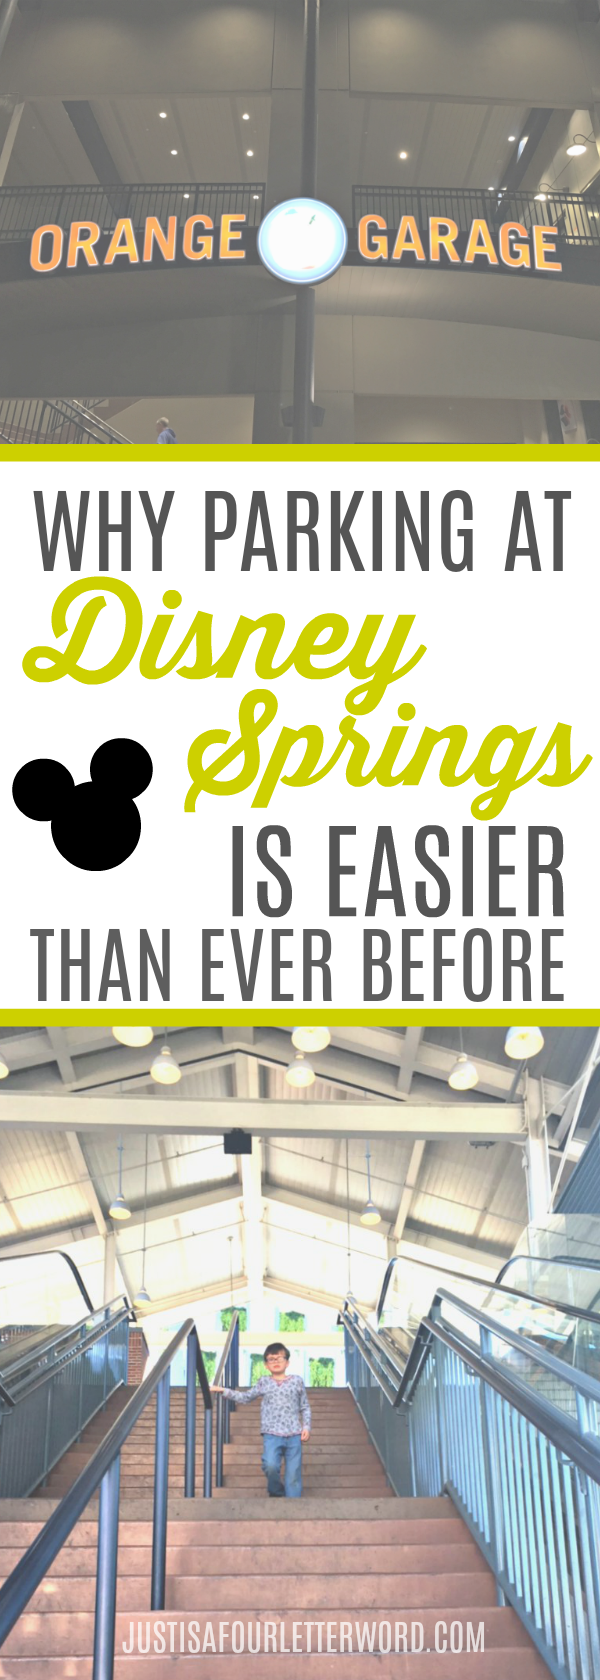 Why Parking at Disney Springs is easier than ever before